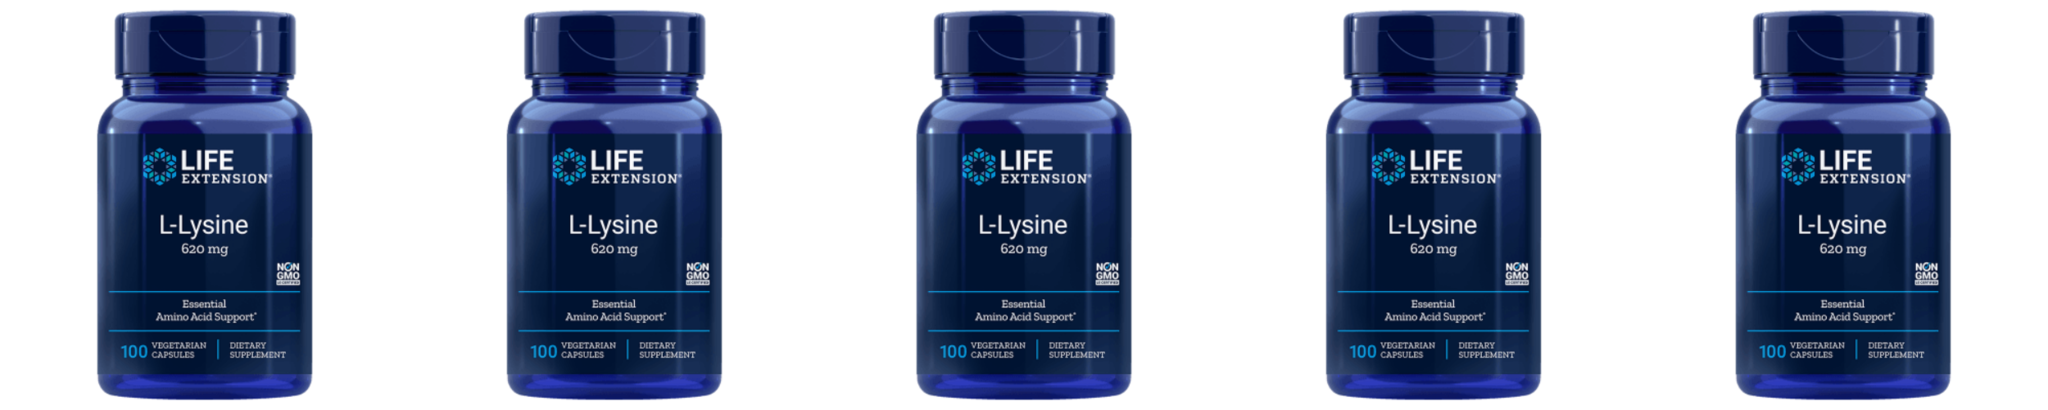 Life Extension L-Lysine, 620 Mg 100 Vegetarian Capsules, 5-pack